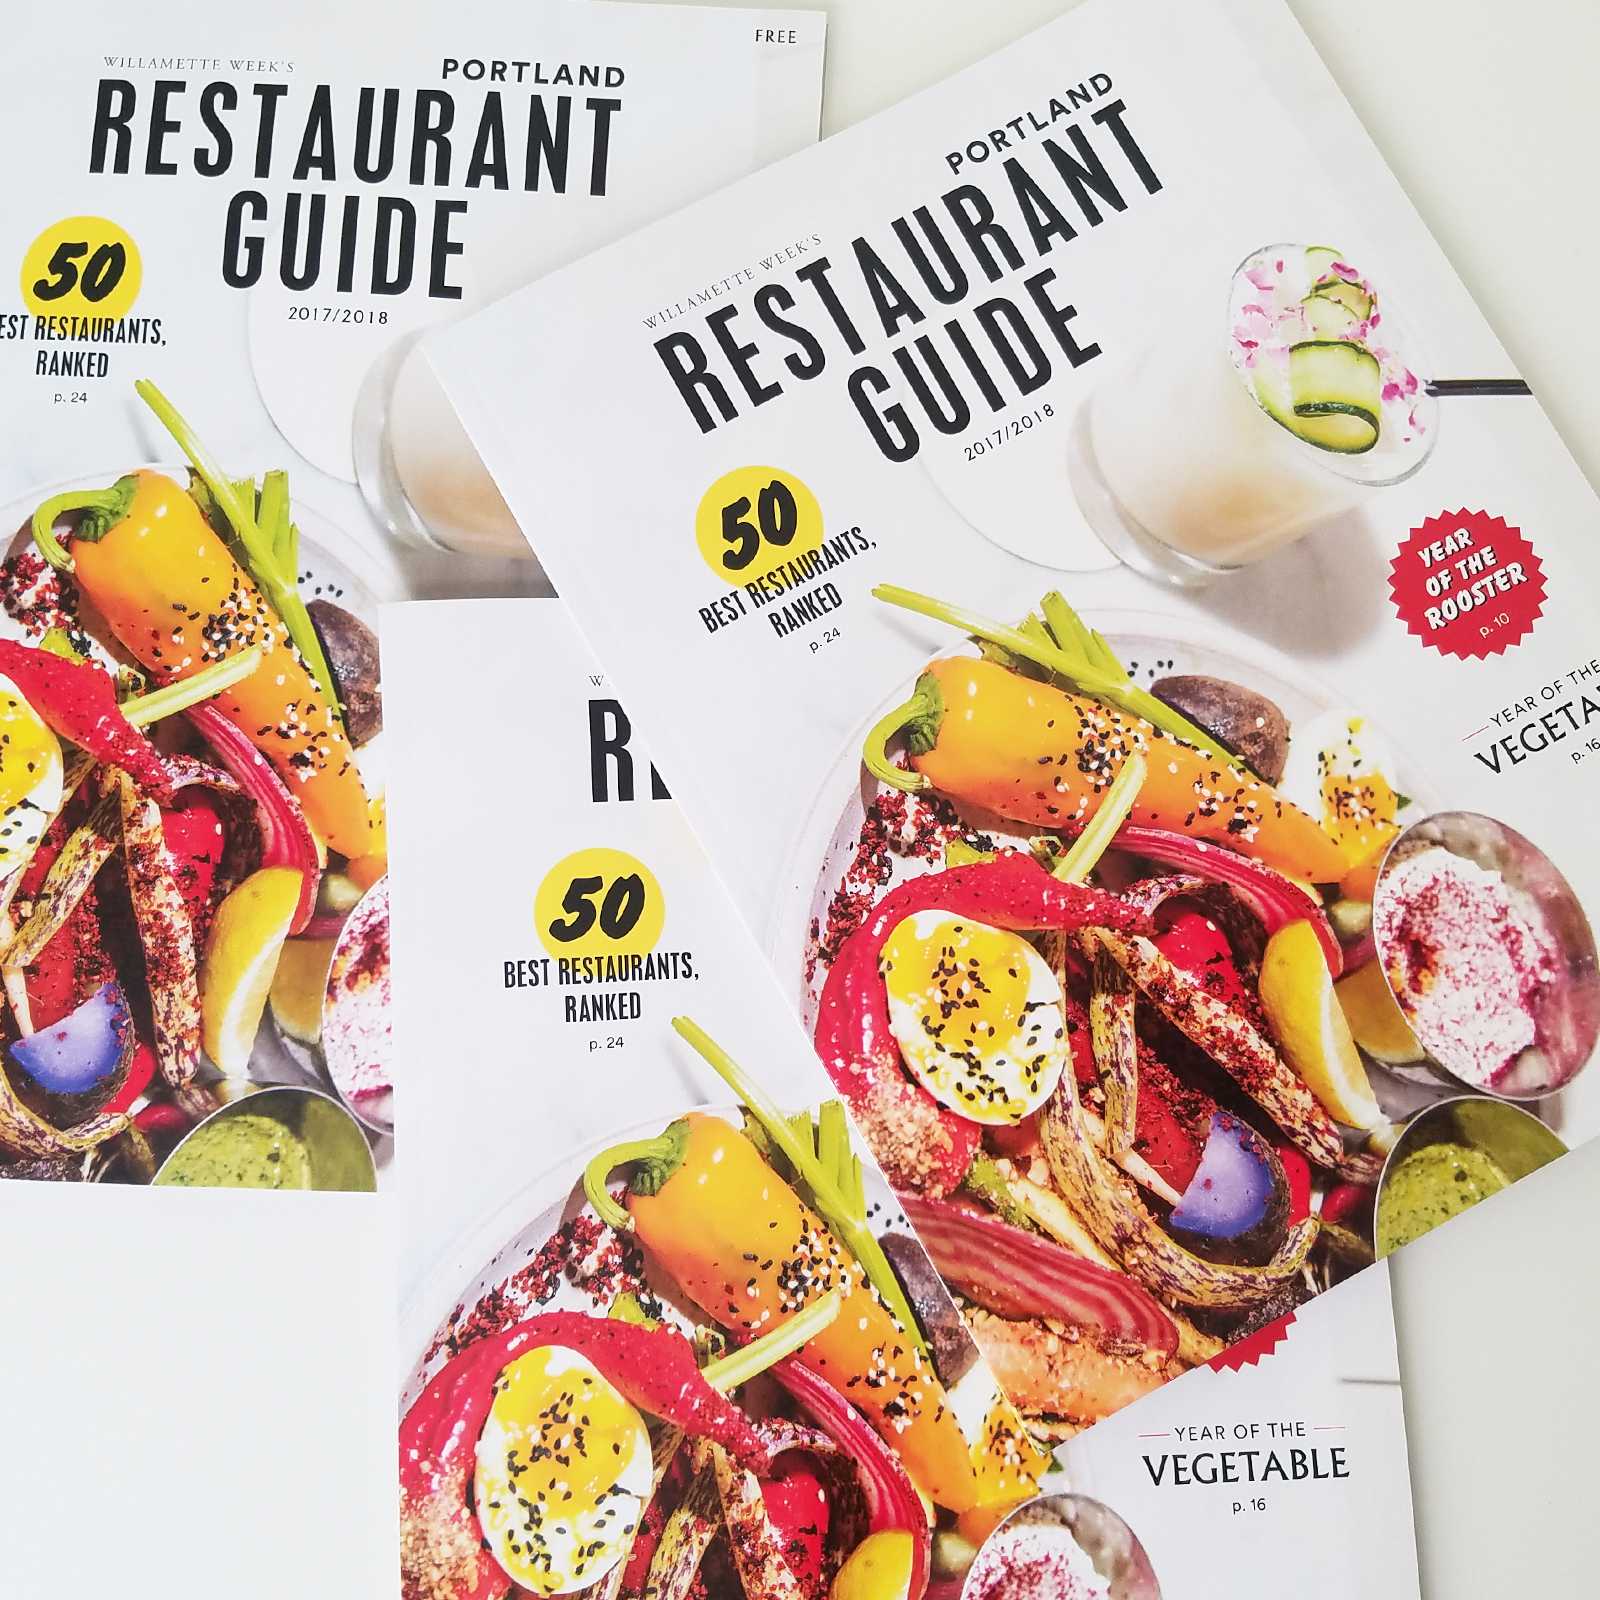 rc ww restaurant guide.jpg